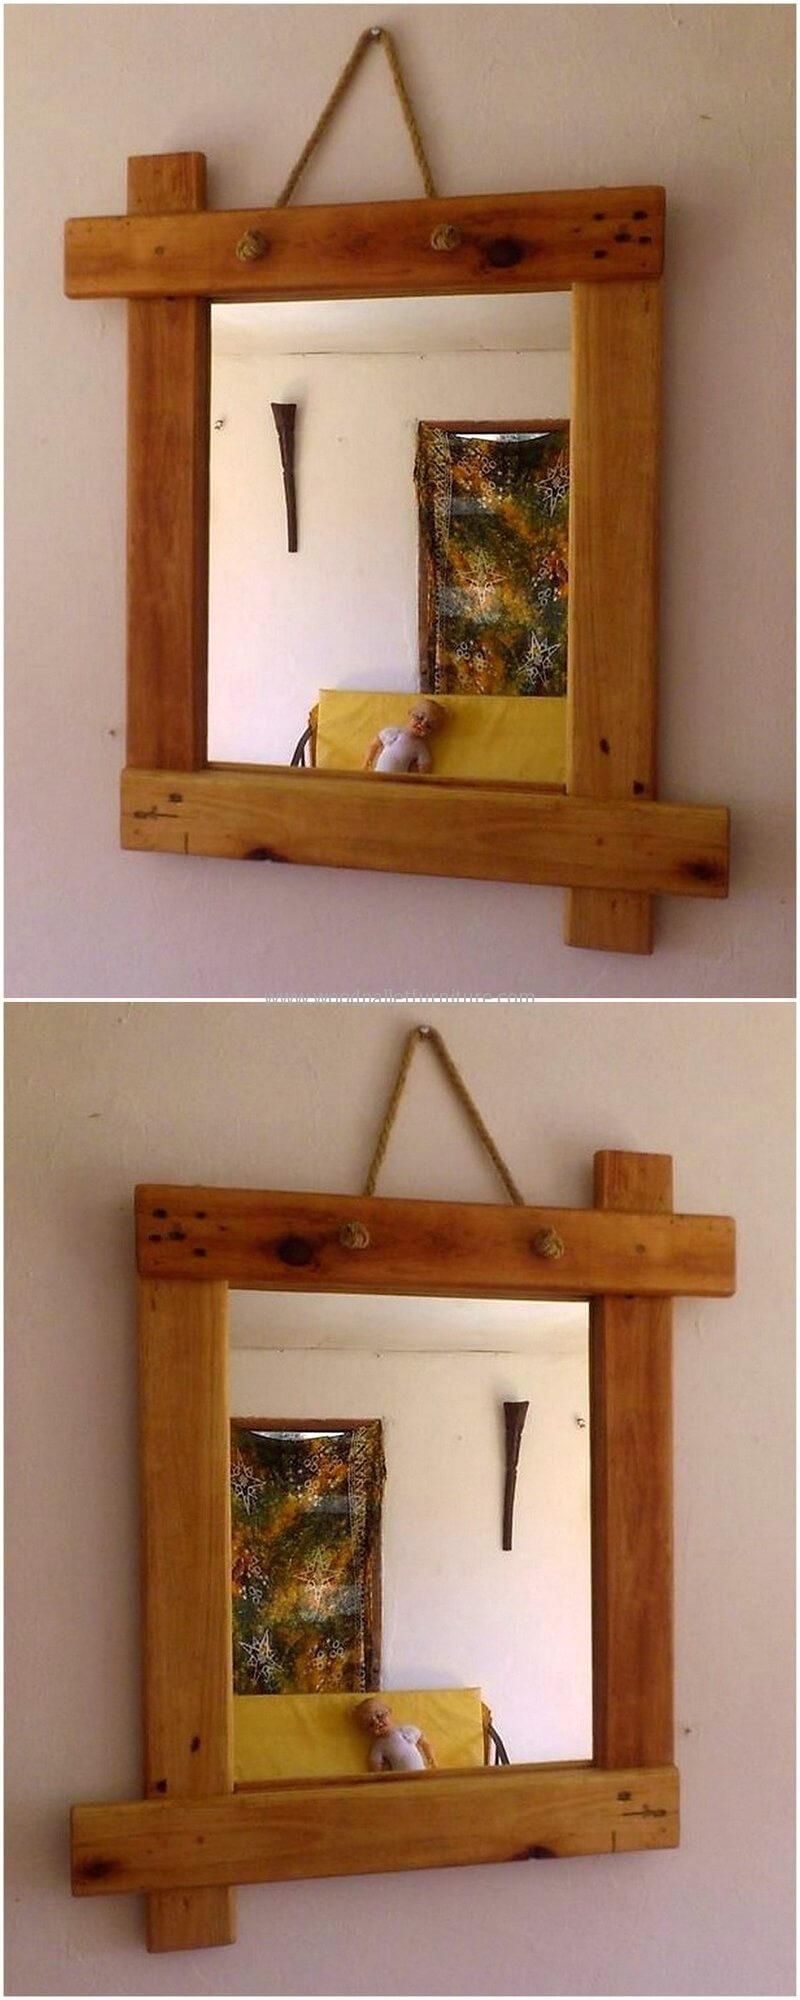 simple pallet mirror idea | dulgherie | Pinterest | Espejo, Madera y ...